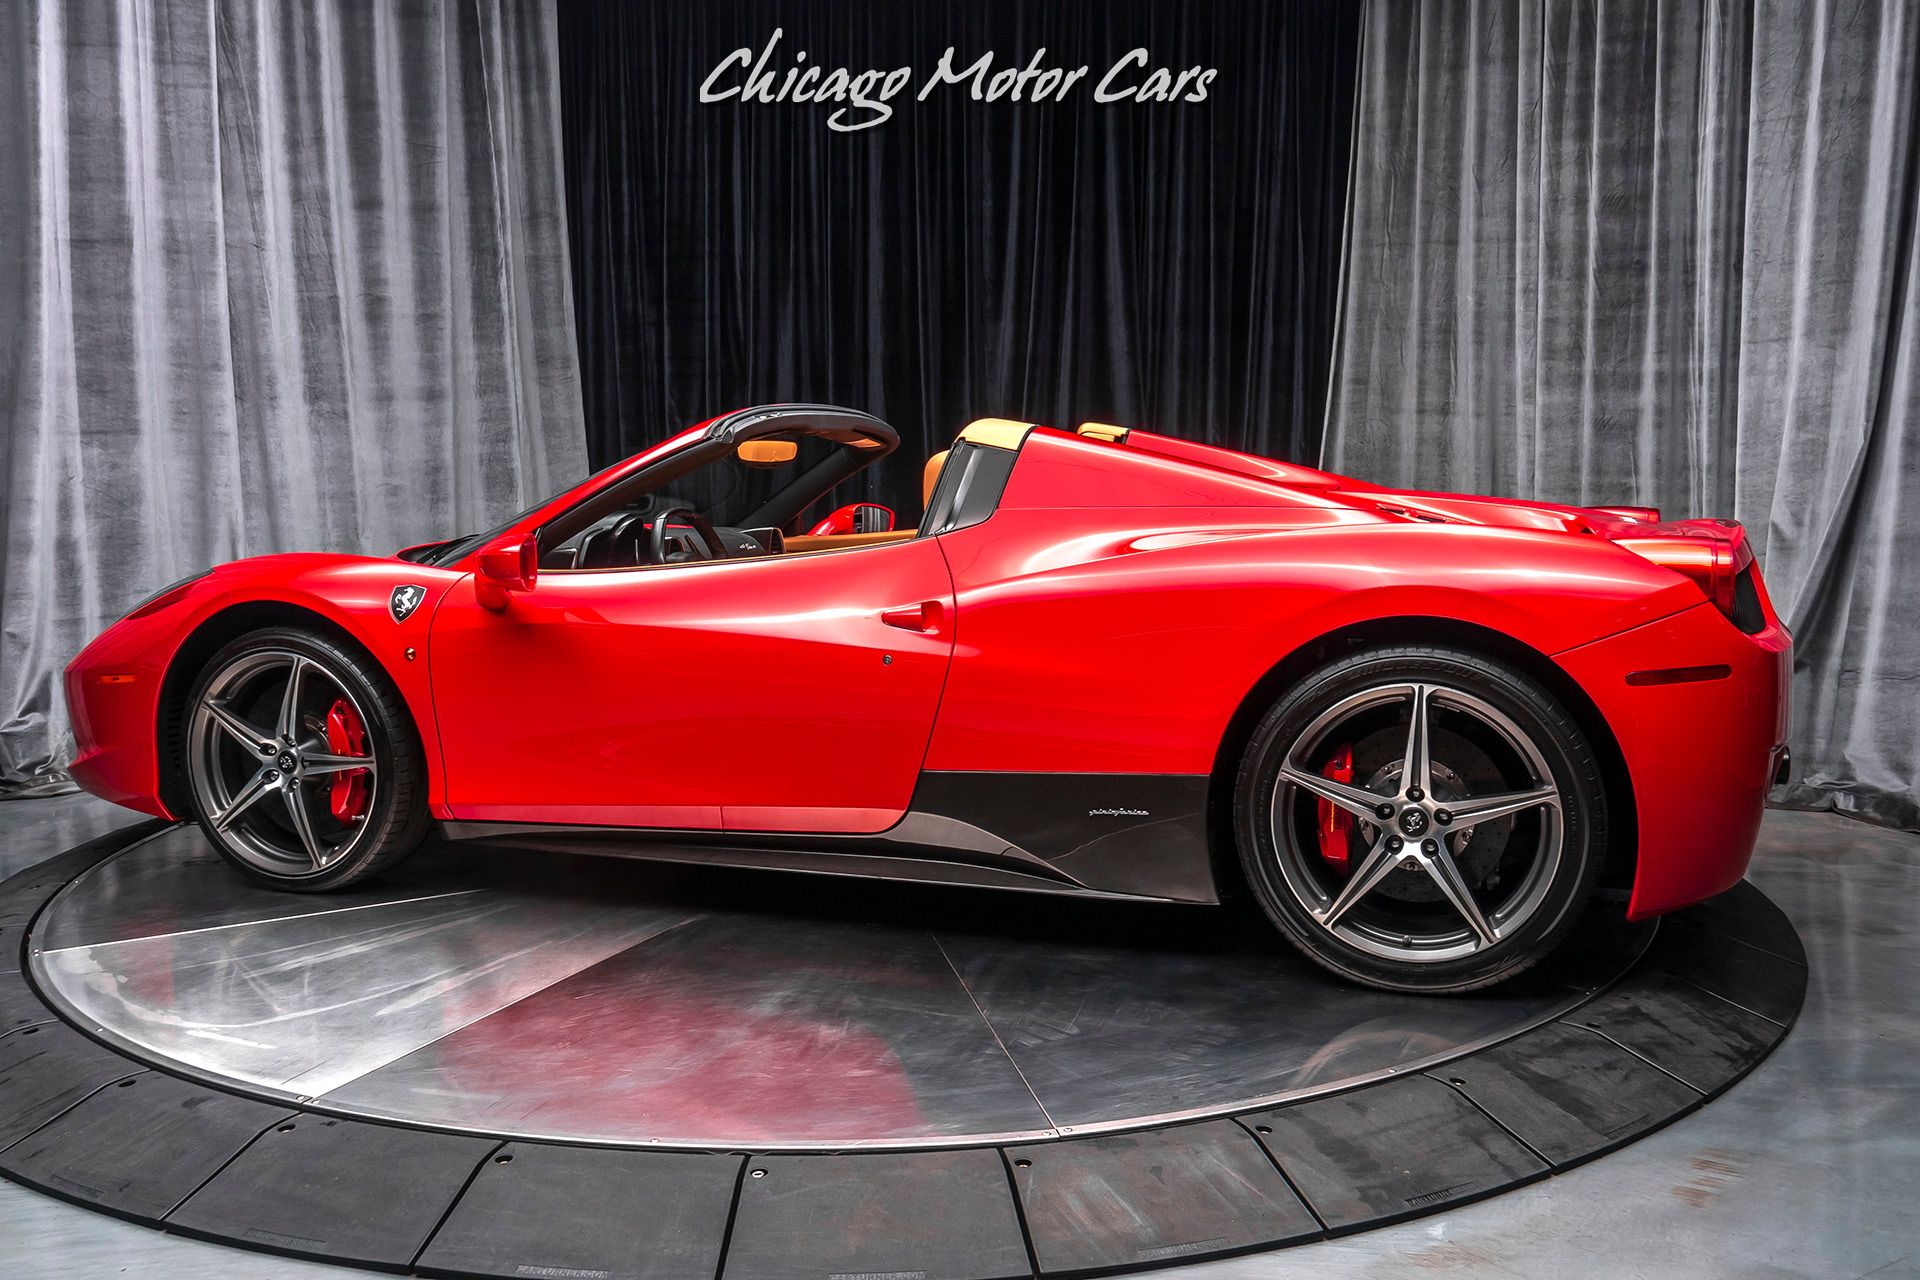 2012 Ferrari 458 Spider Chicago Motor Cars United States For Sale On Luxurypulse Ferrari 458 Motor Car Ferrari